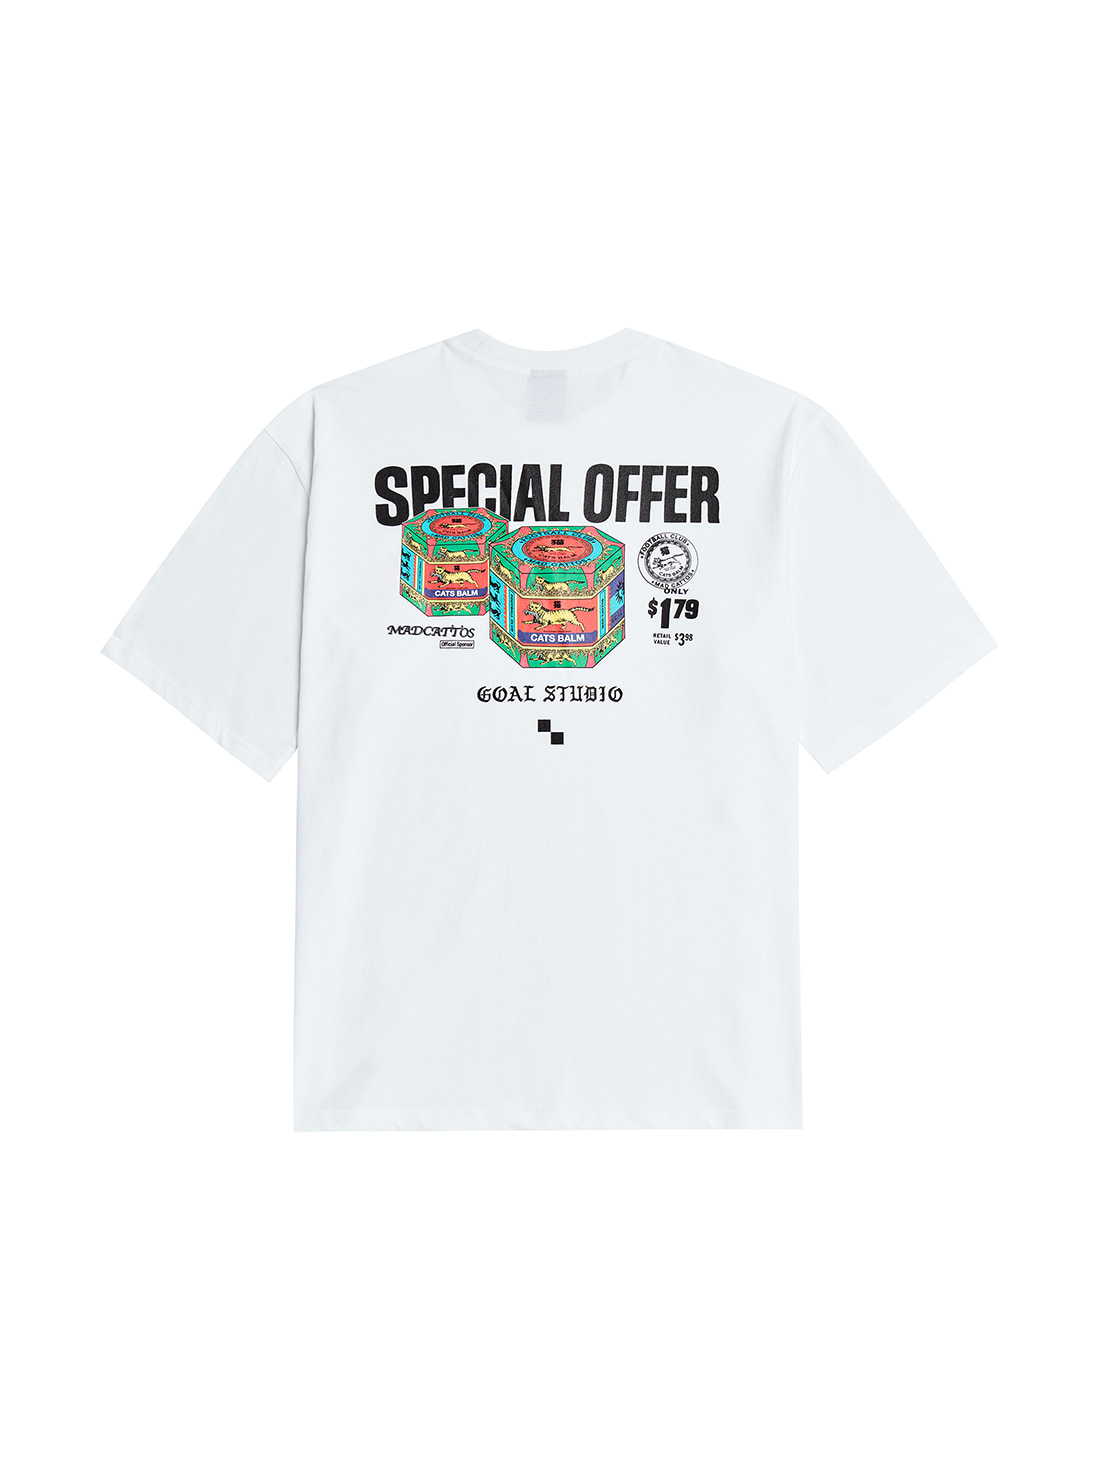 MC BALM GRAPHIC TEE - WHITE